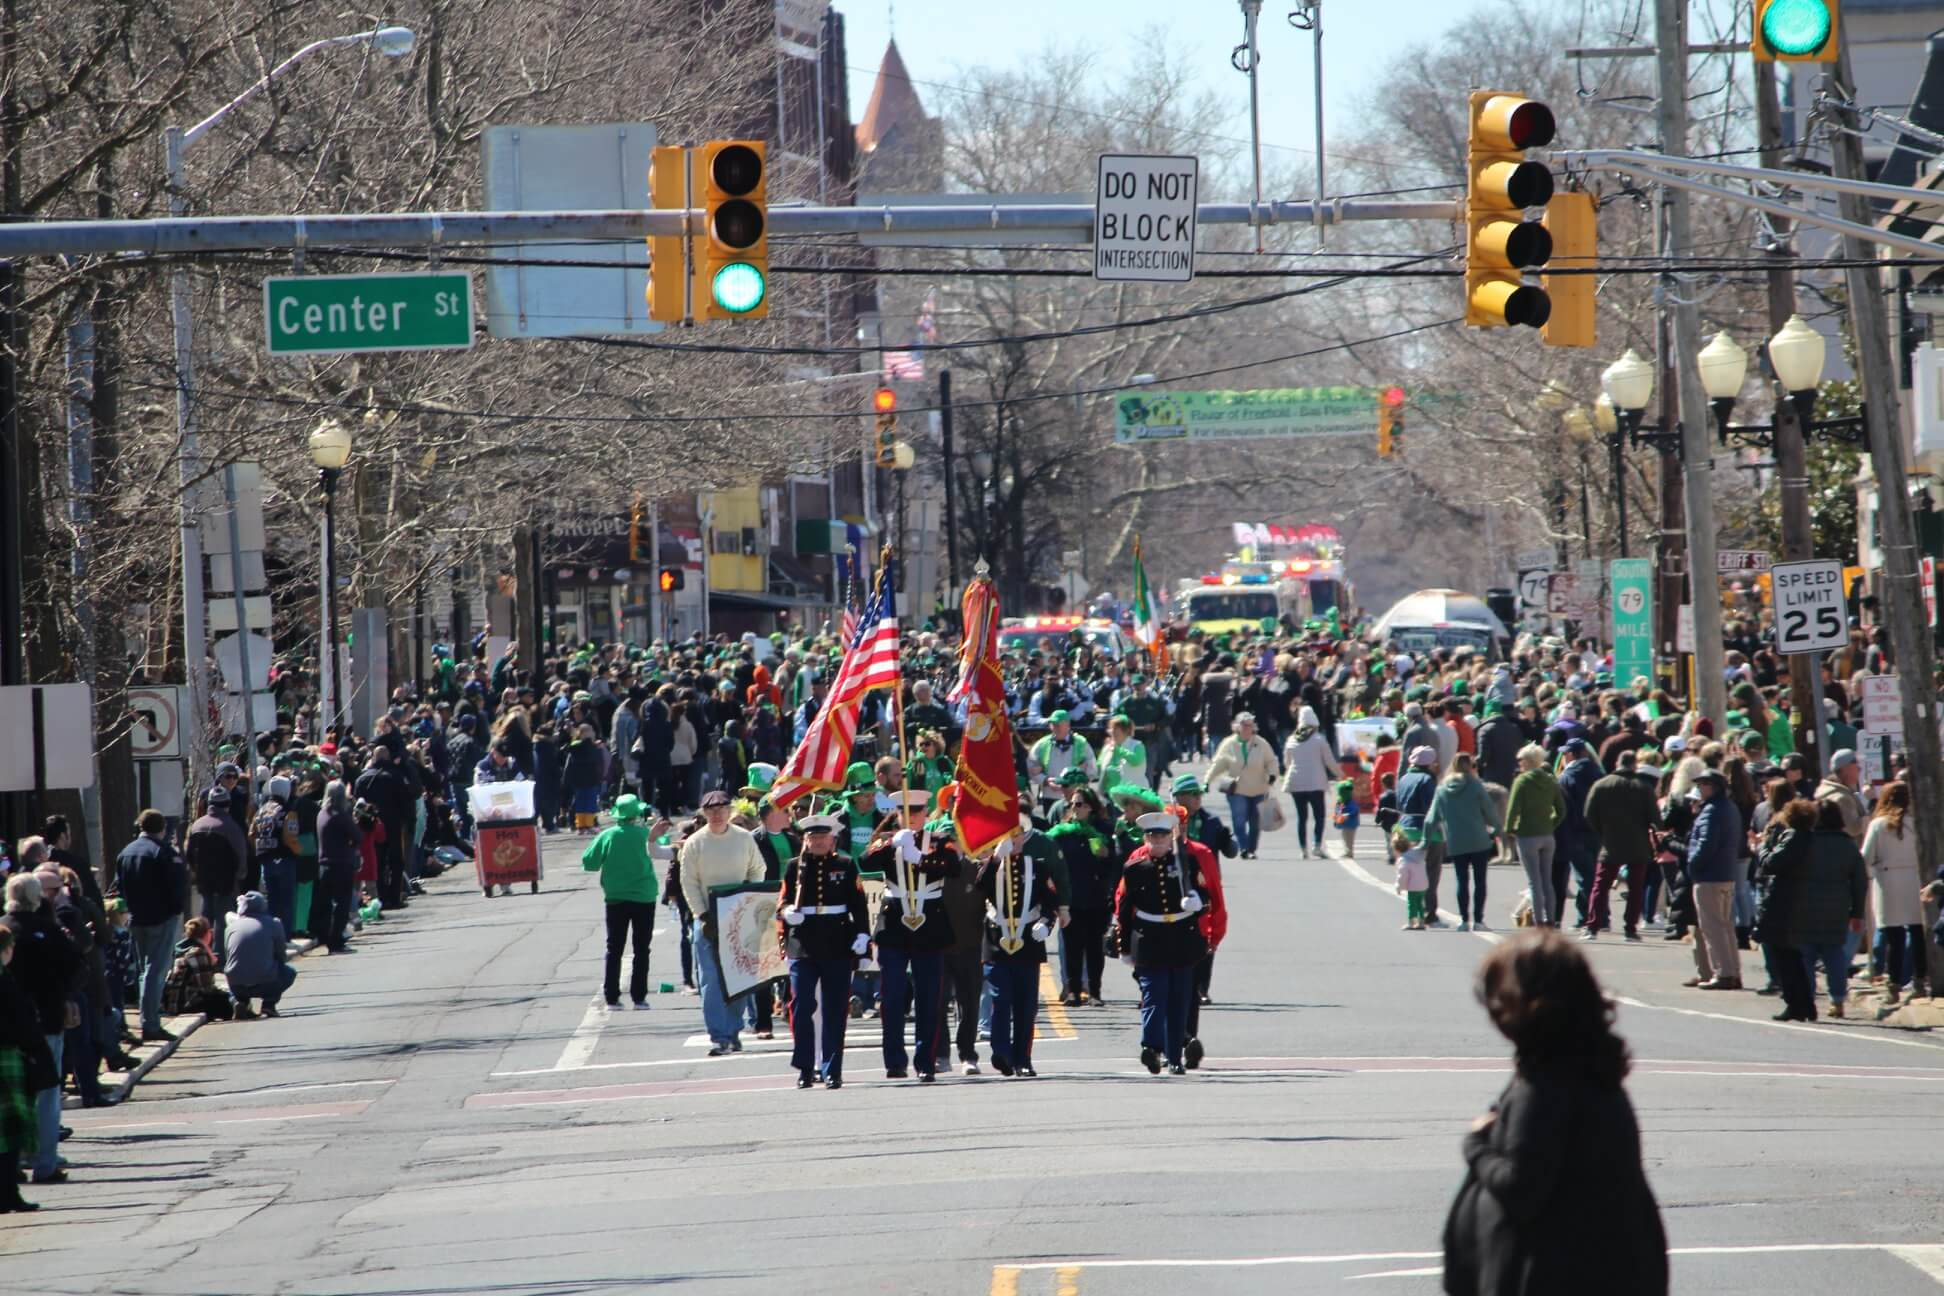 Freehold Borough Arts Council St. Patrick's Day Parade - March 15, 2020